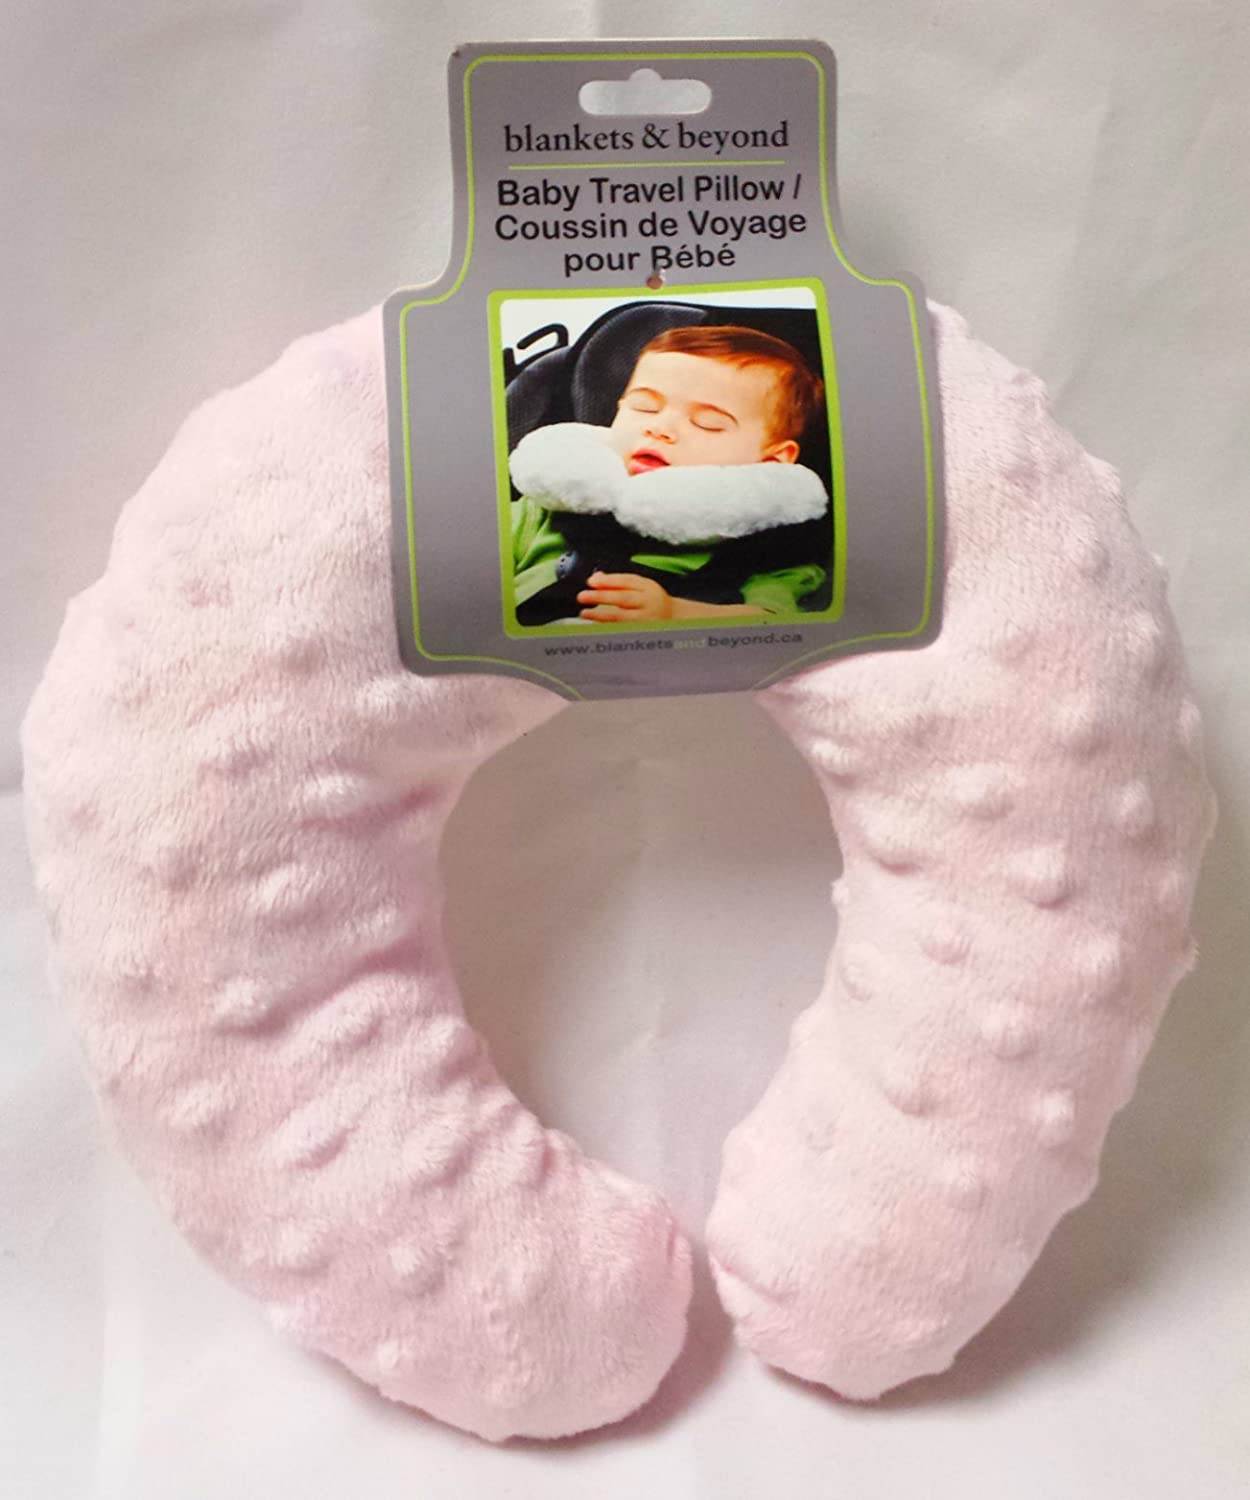 Blankets & Beyond Baby Travel Pillow